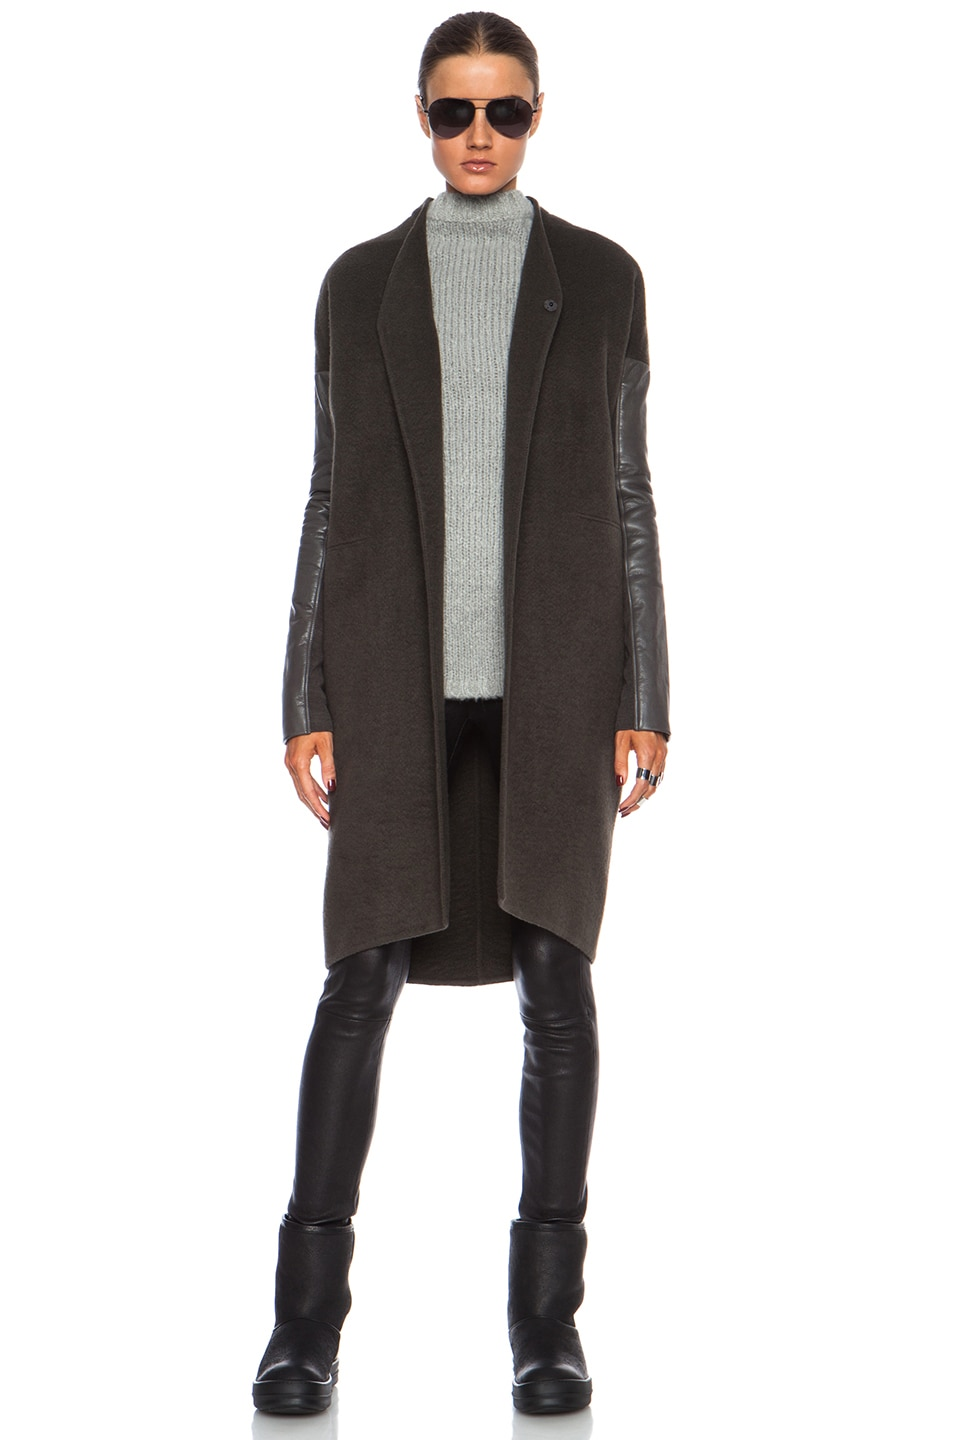 Image 1 of Rick Owens Dagger Cashmere Peacoat with Leather Sleeves in Dark Dust